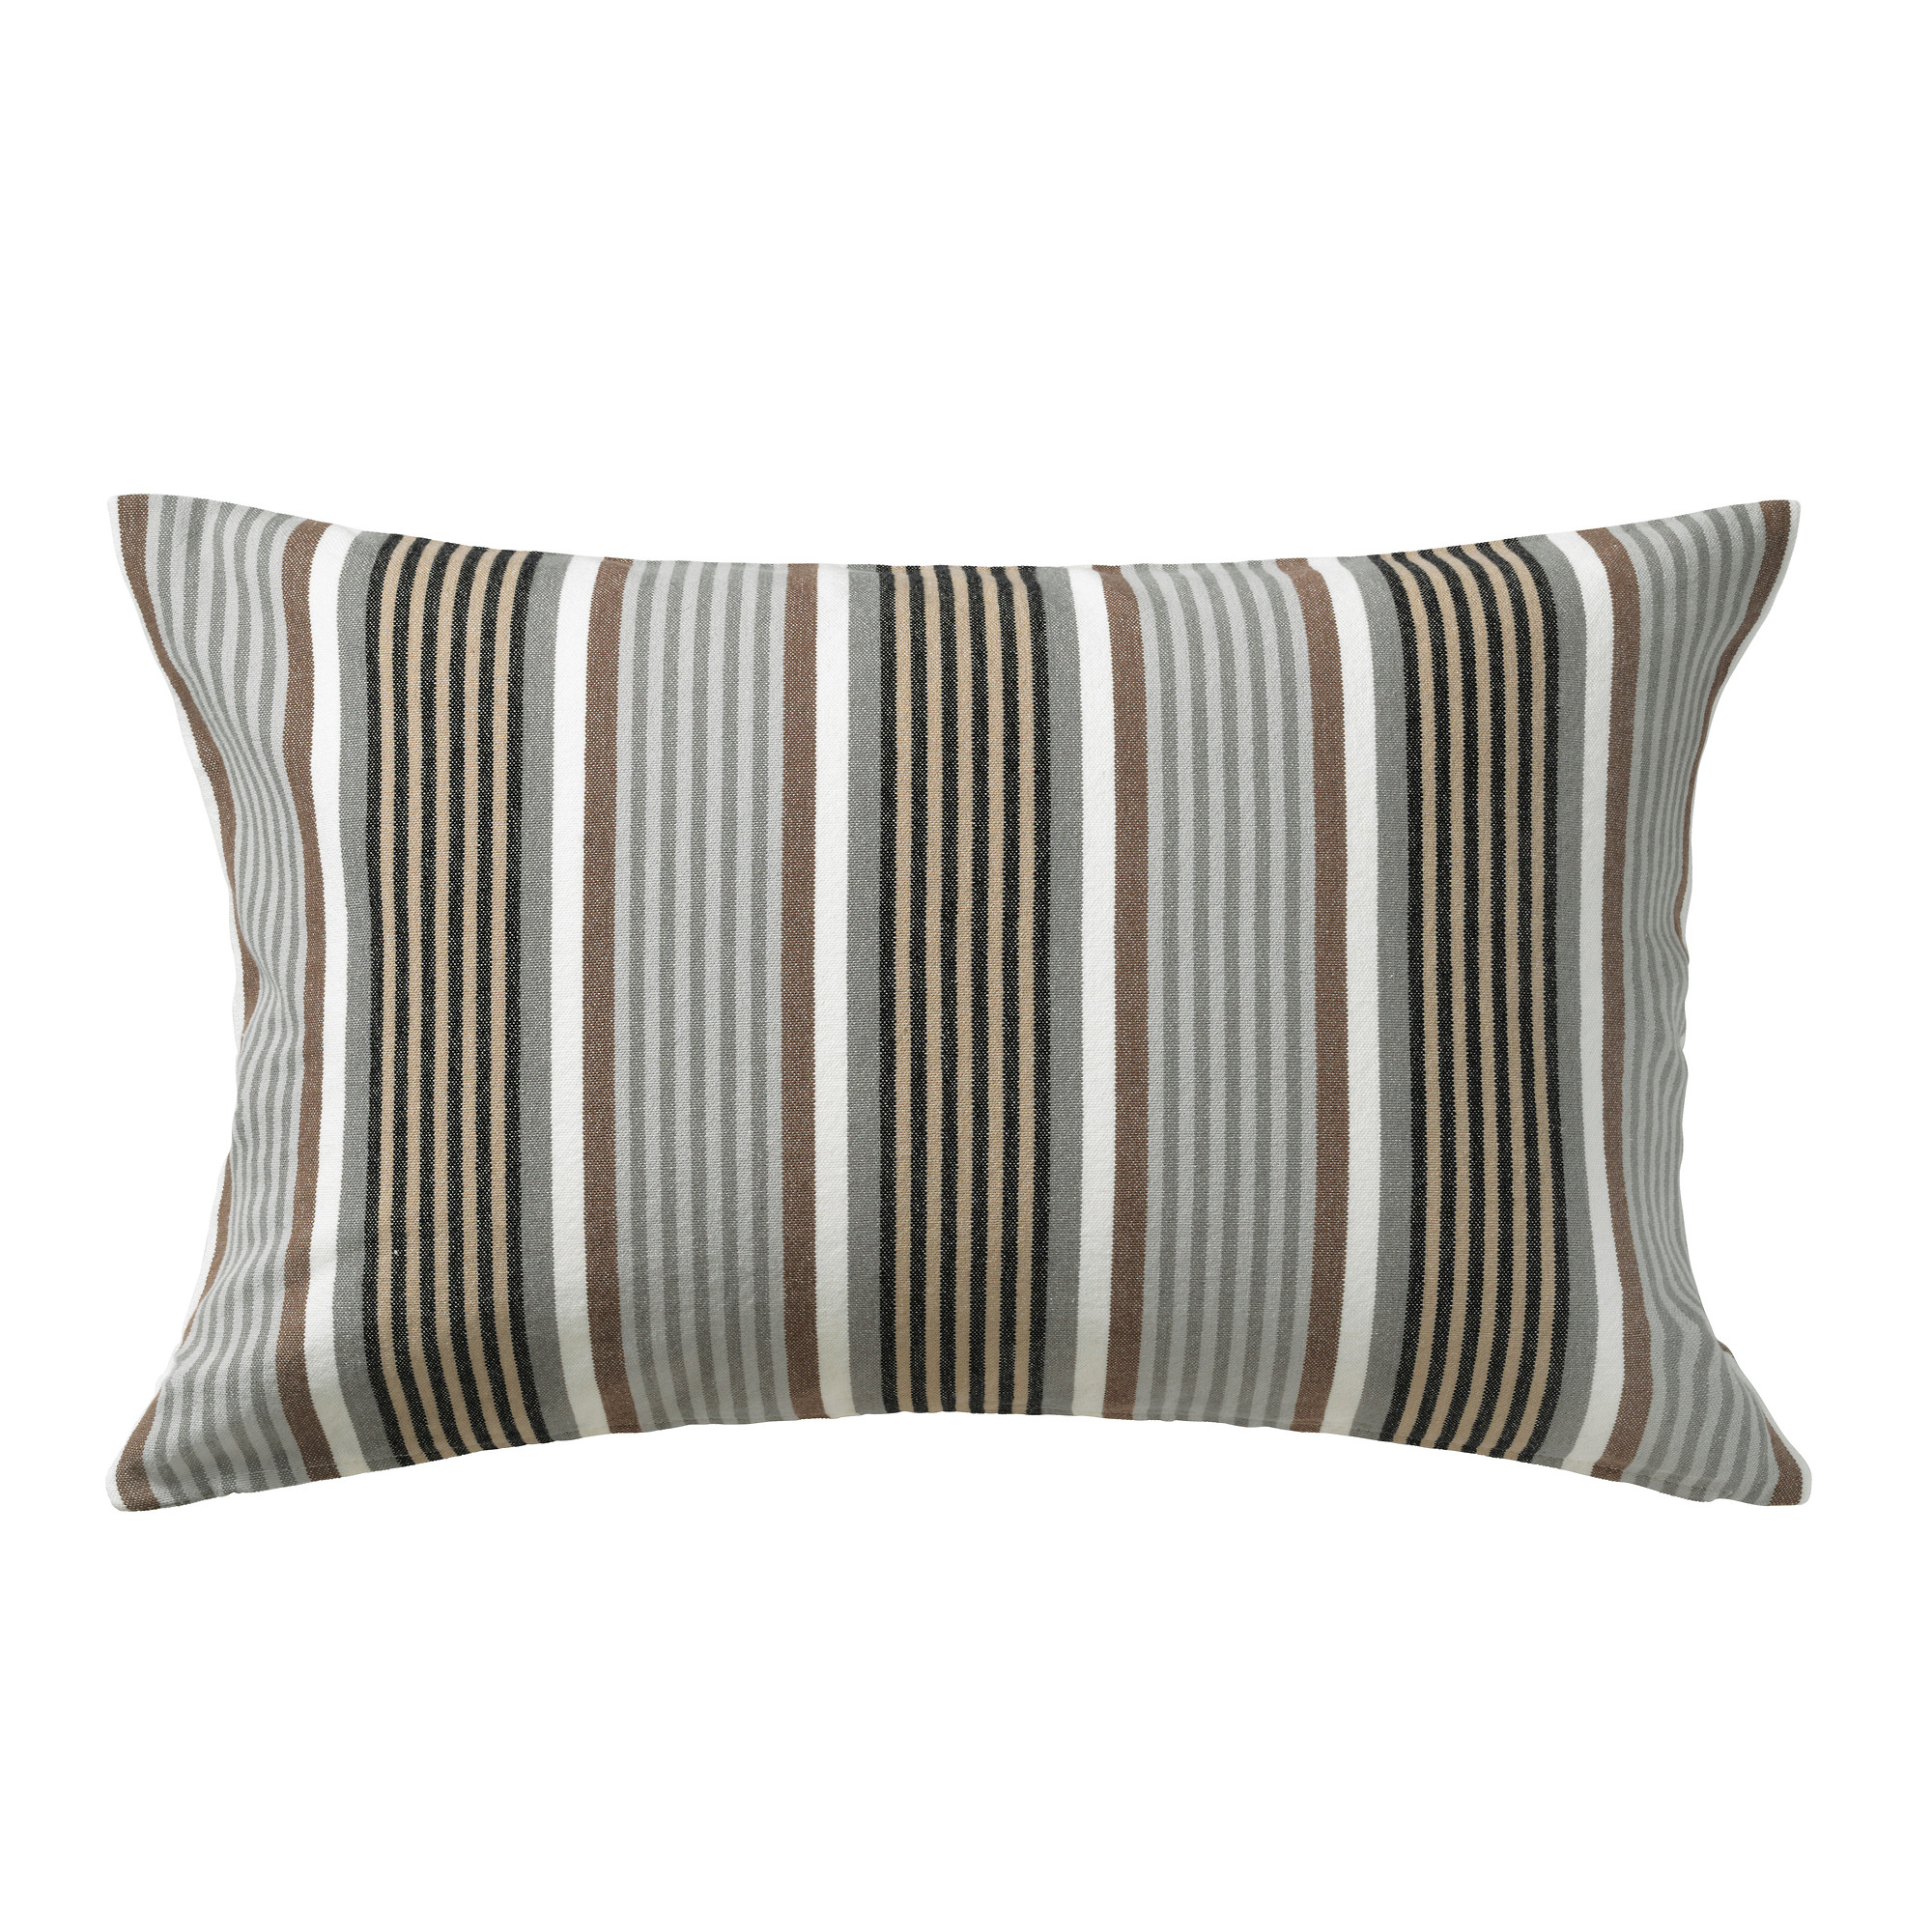 Decorative Pillow Covers | Walmart Decorative Pillows | Walmart Throw Pillows